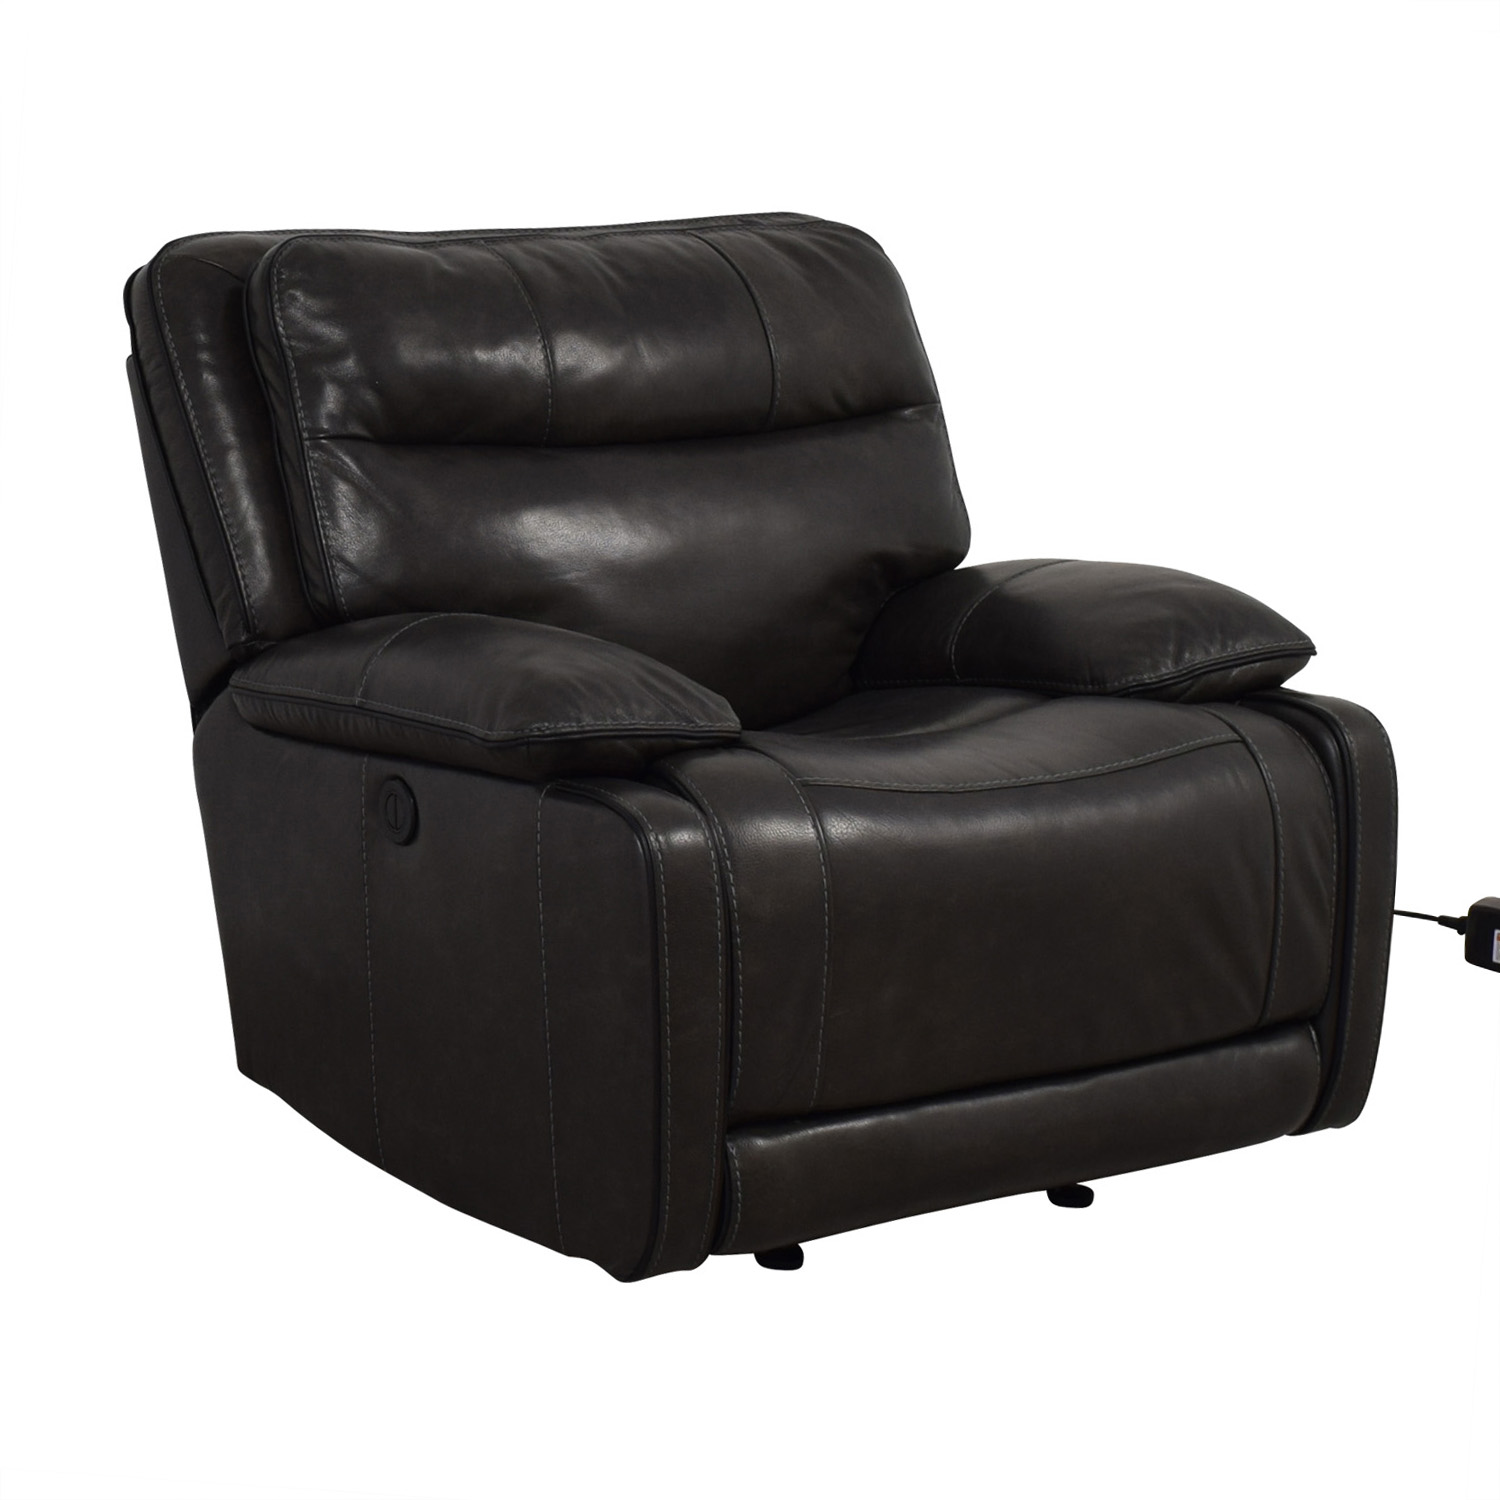 buy Palladum Leather Metal Power Recliner Palladum Recliners